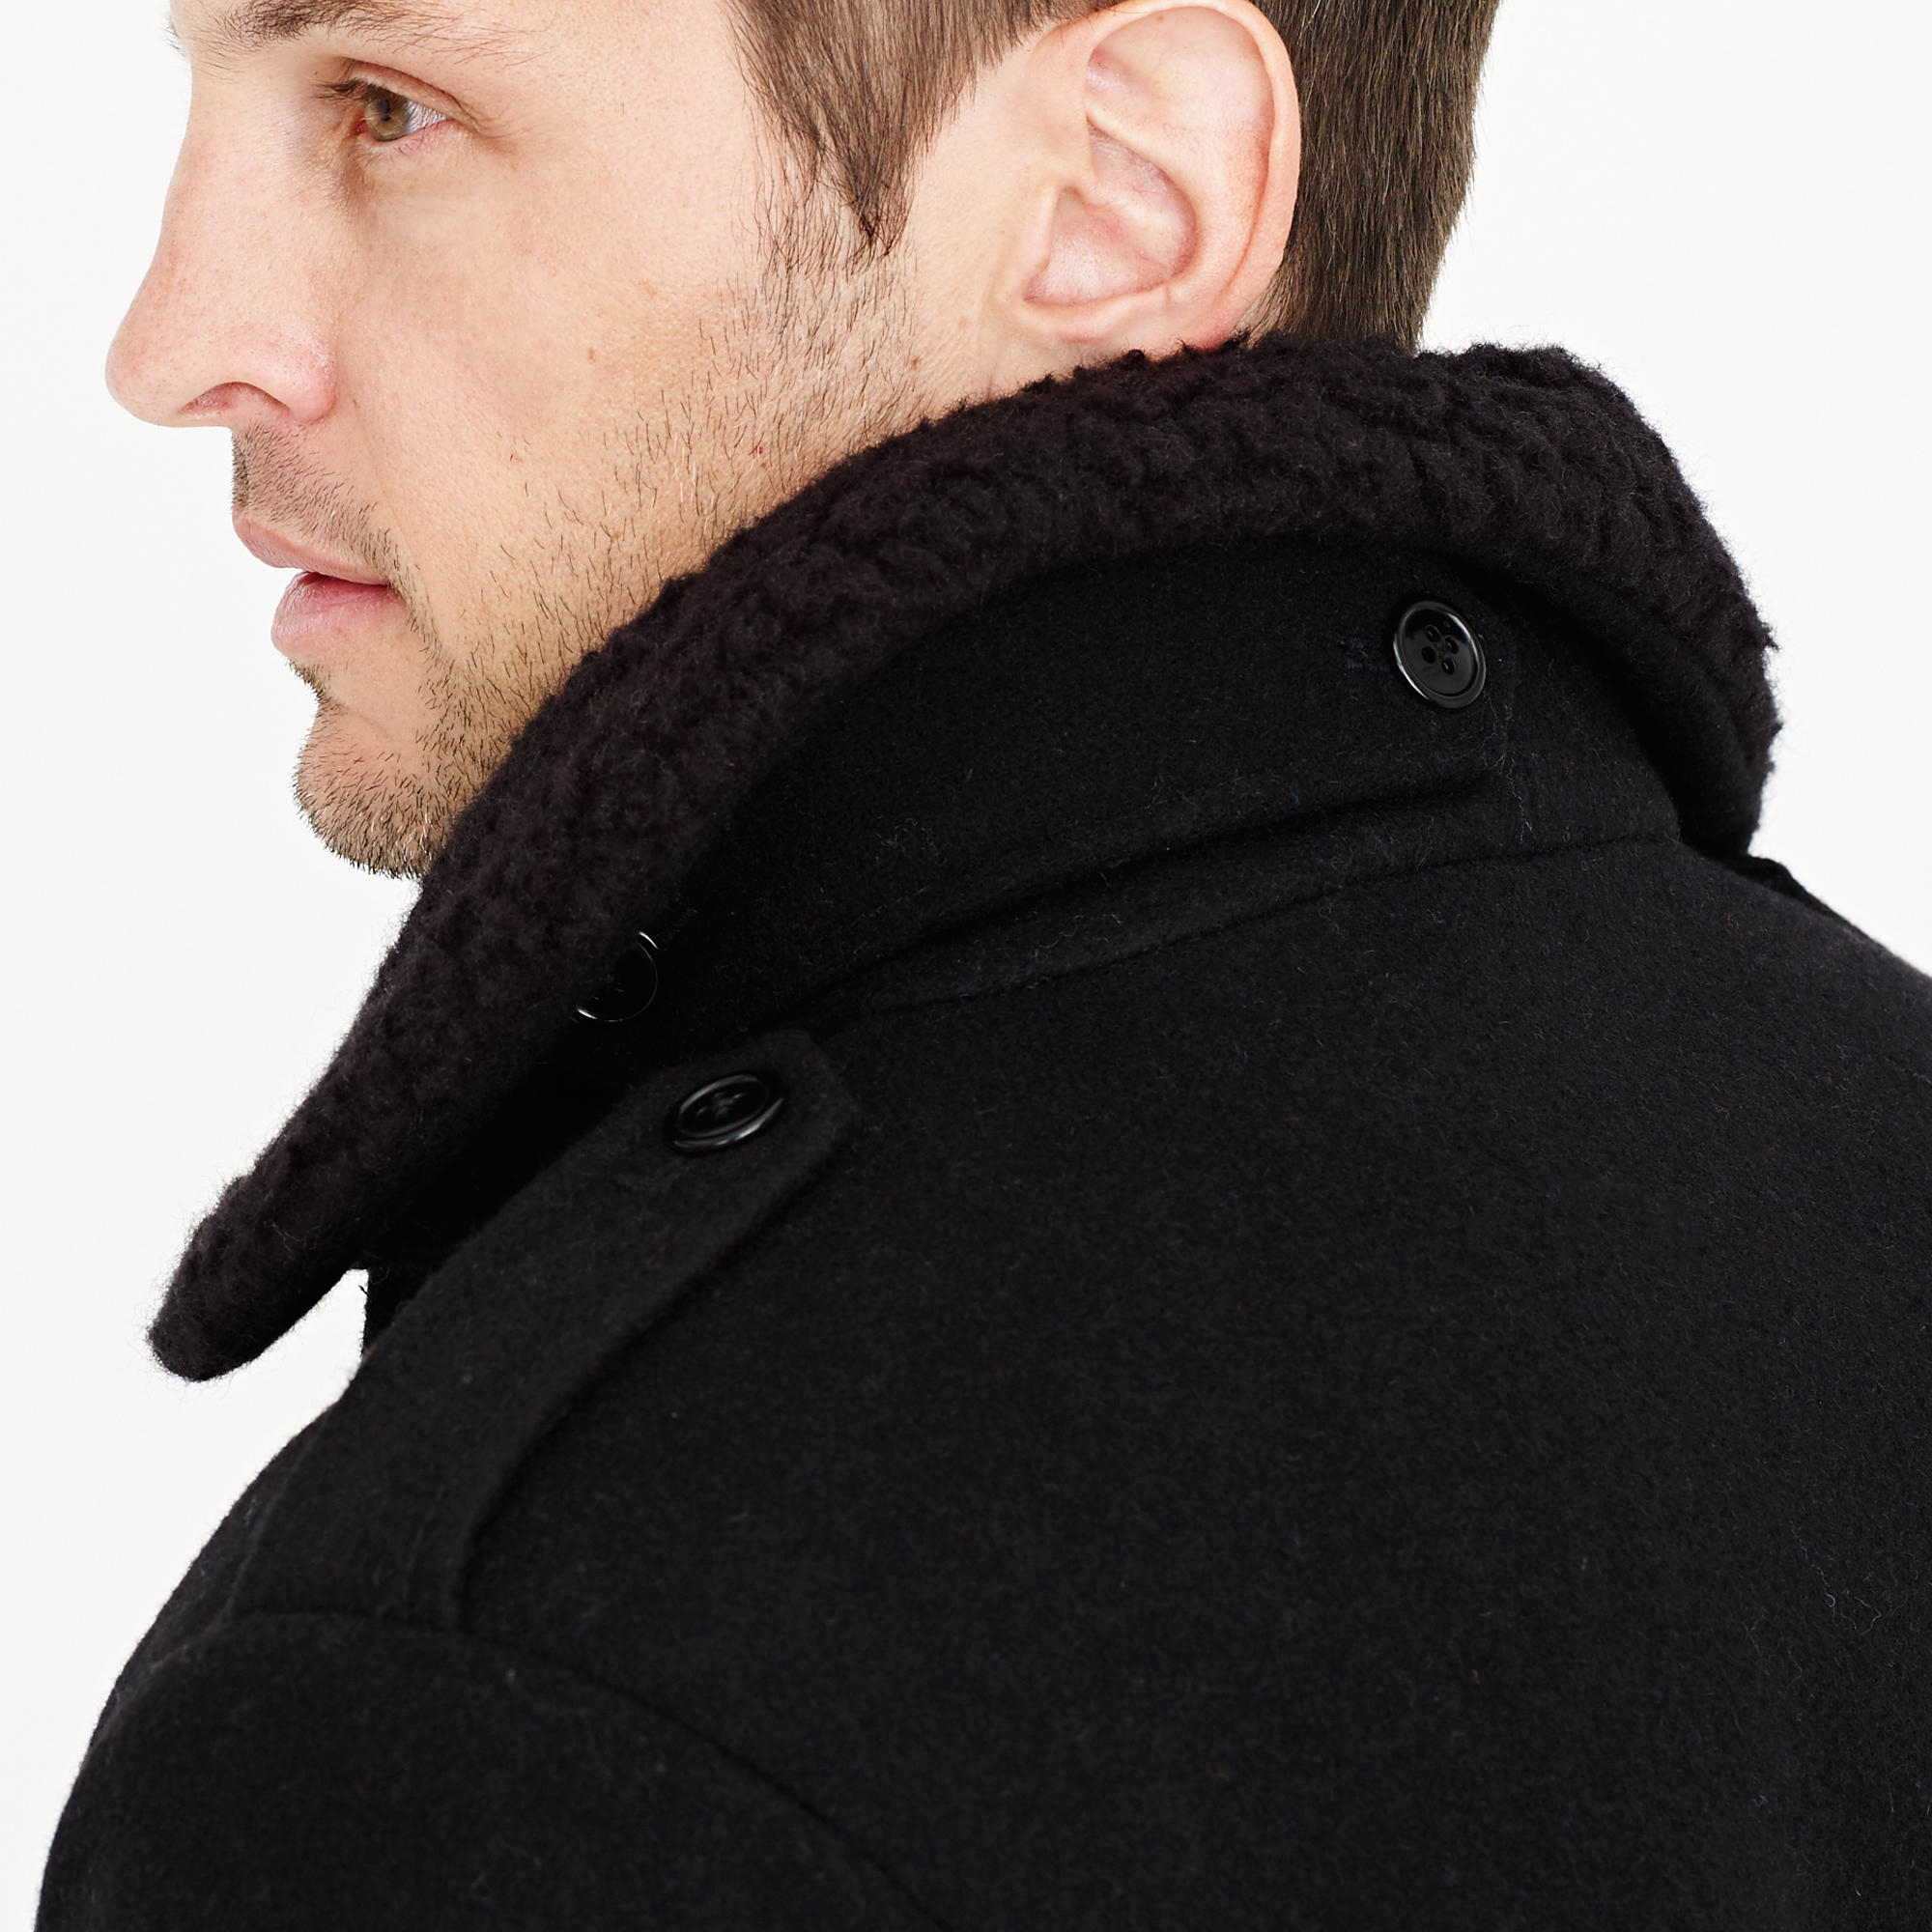 73618f3c1 J.Crew Black Wallace & Barnes Sherpa-collar Wool Bomber Jacket for men